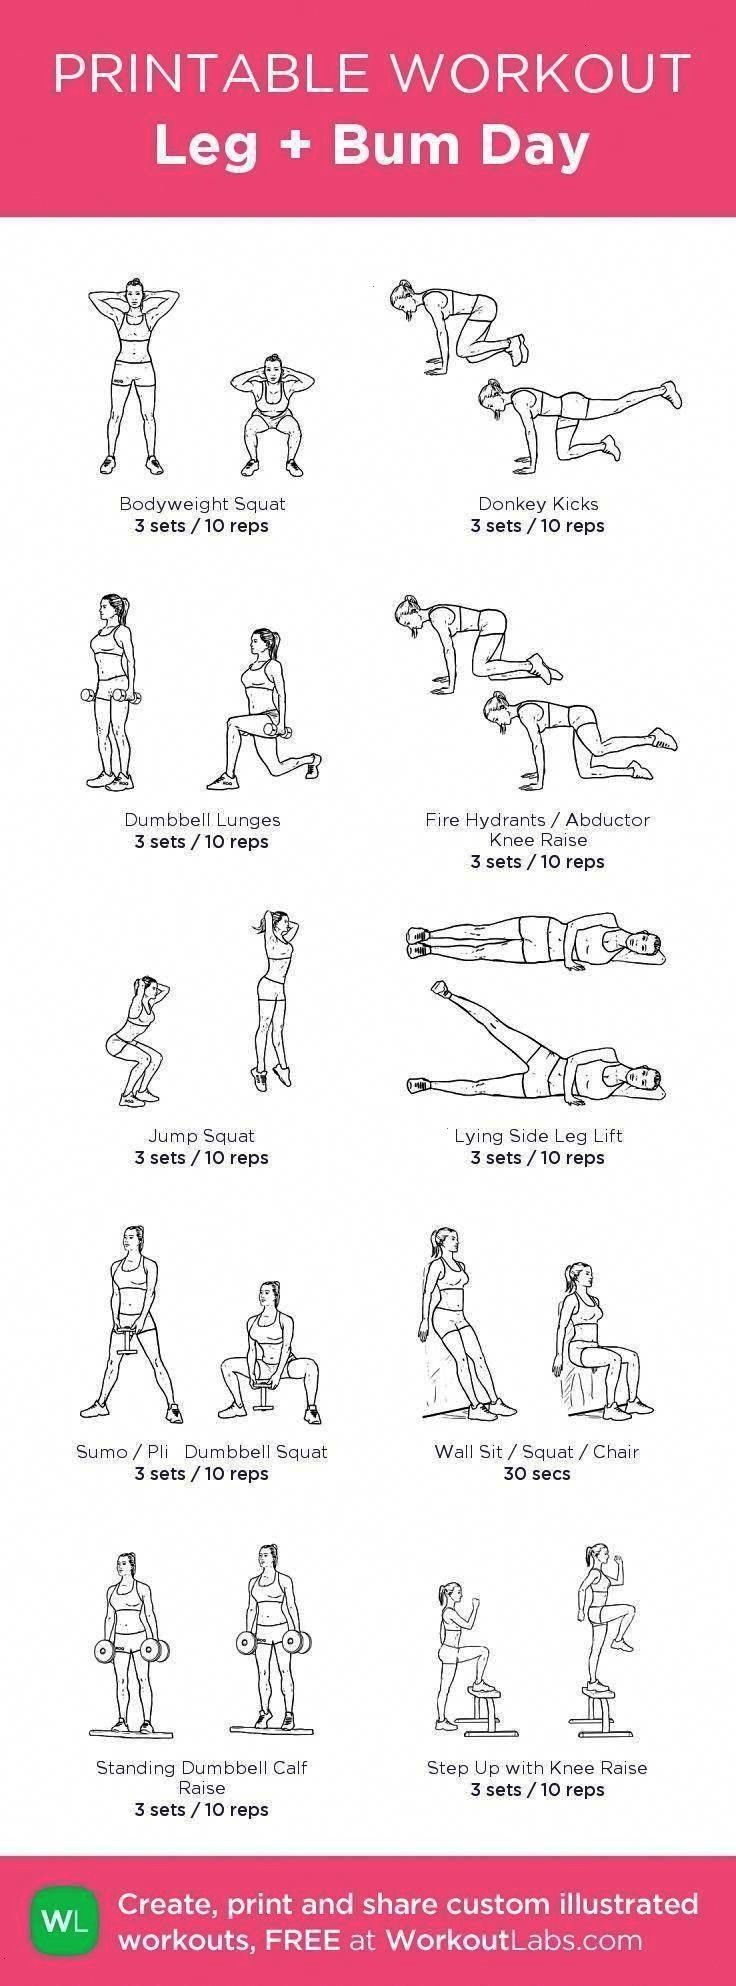 #minutesmy #excersises #3991138673 #customize #guideline #download #exciting #through #workout #unc...